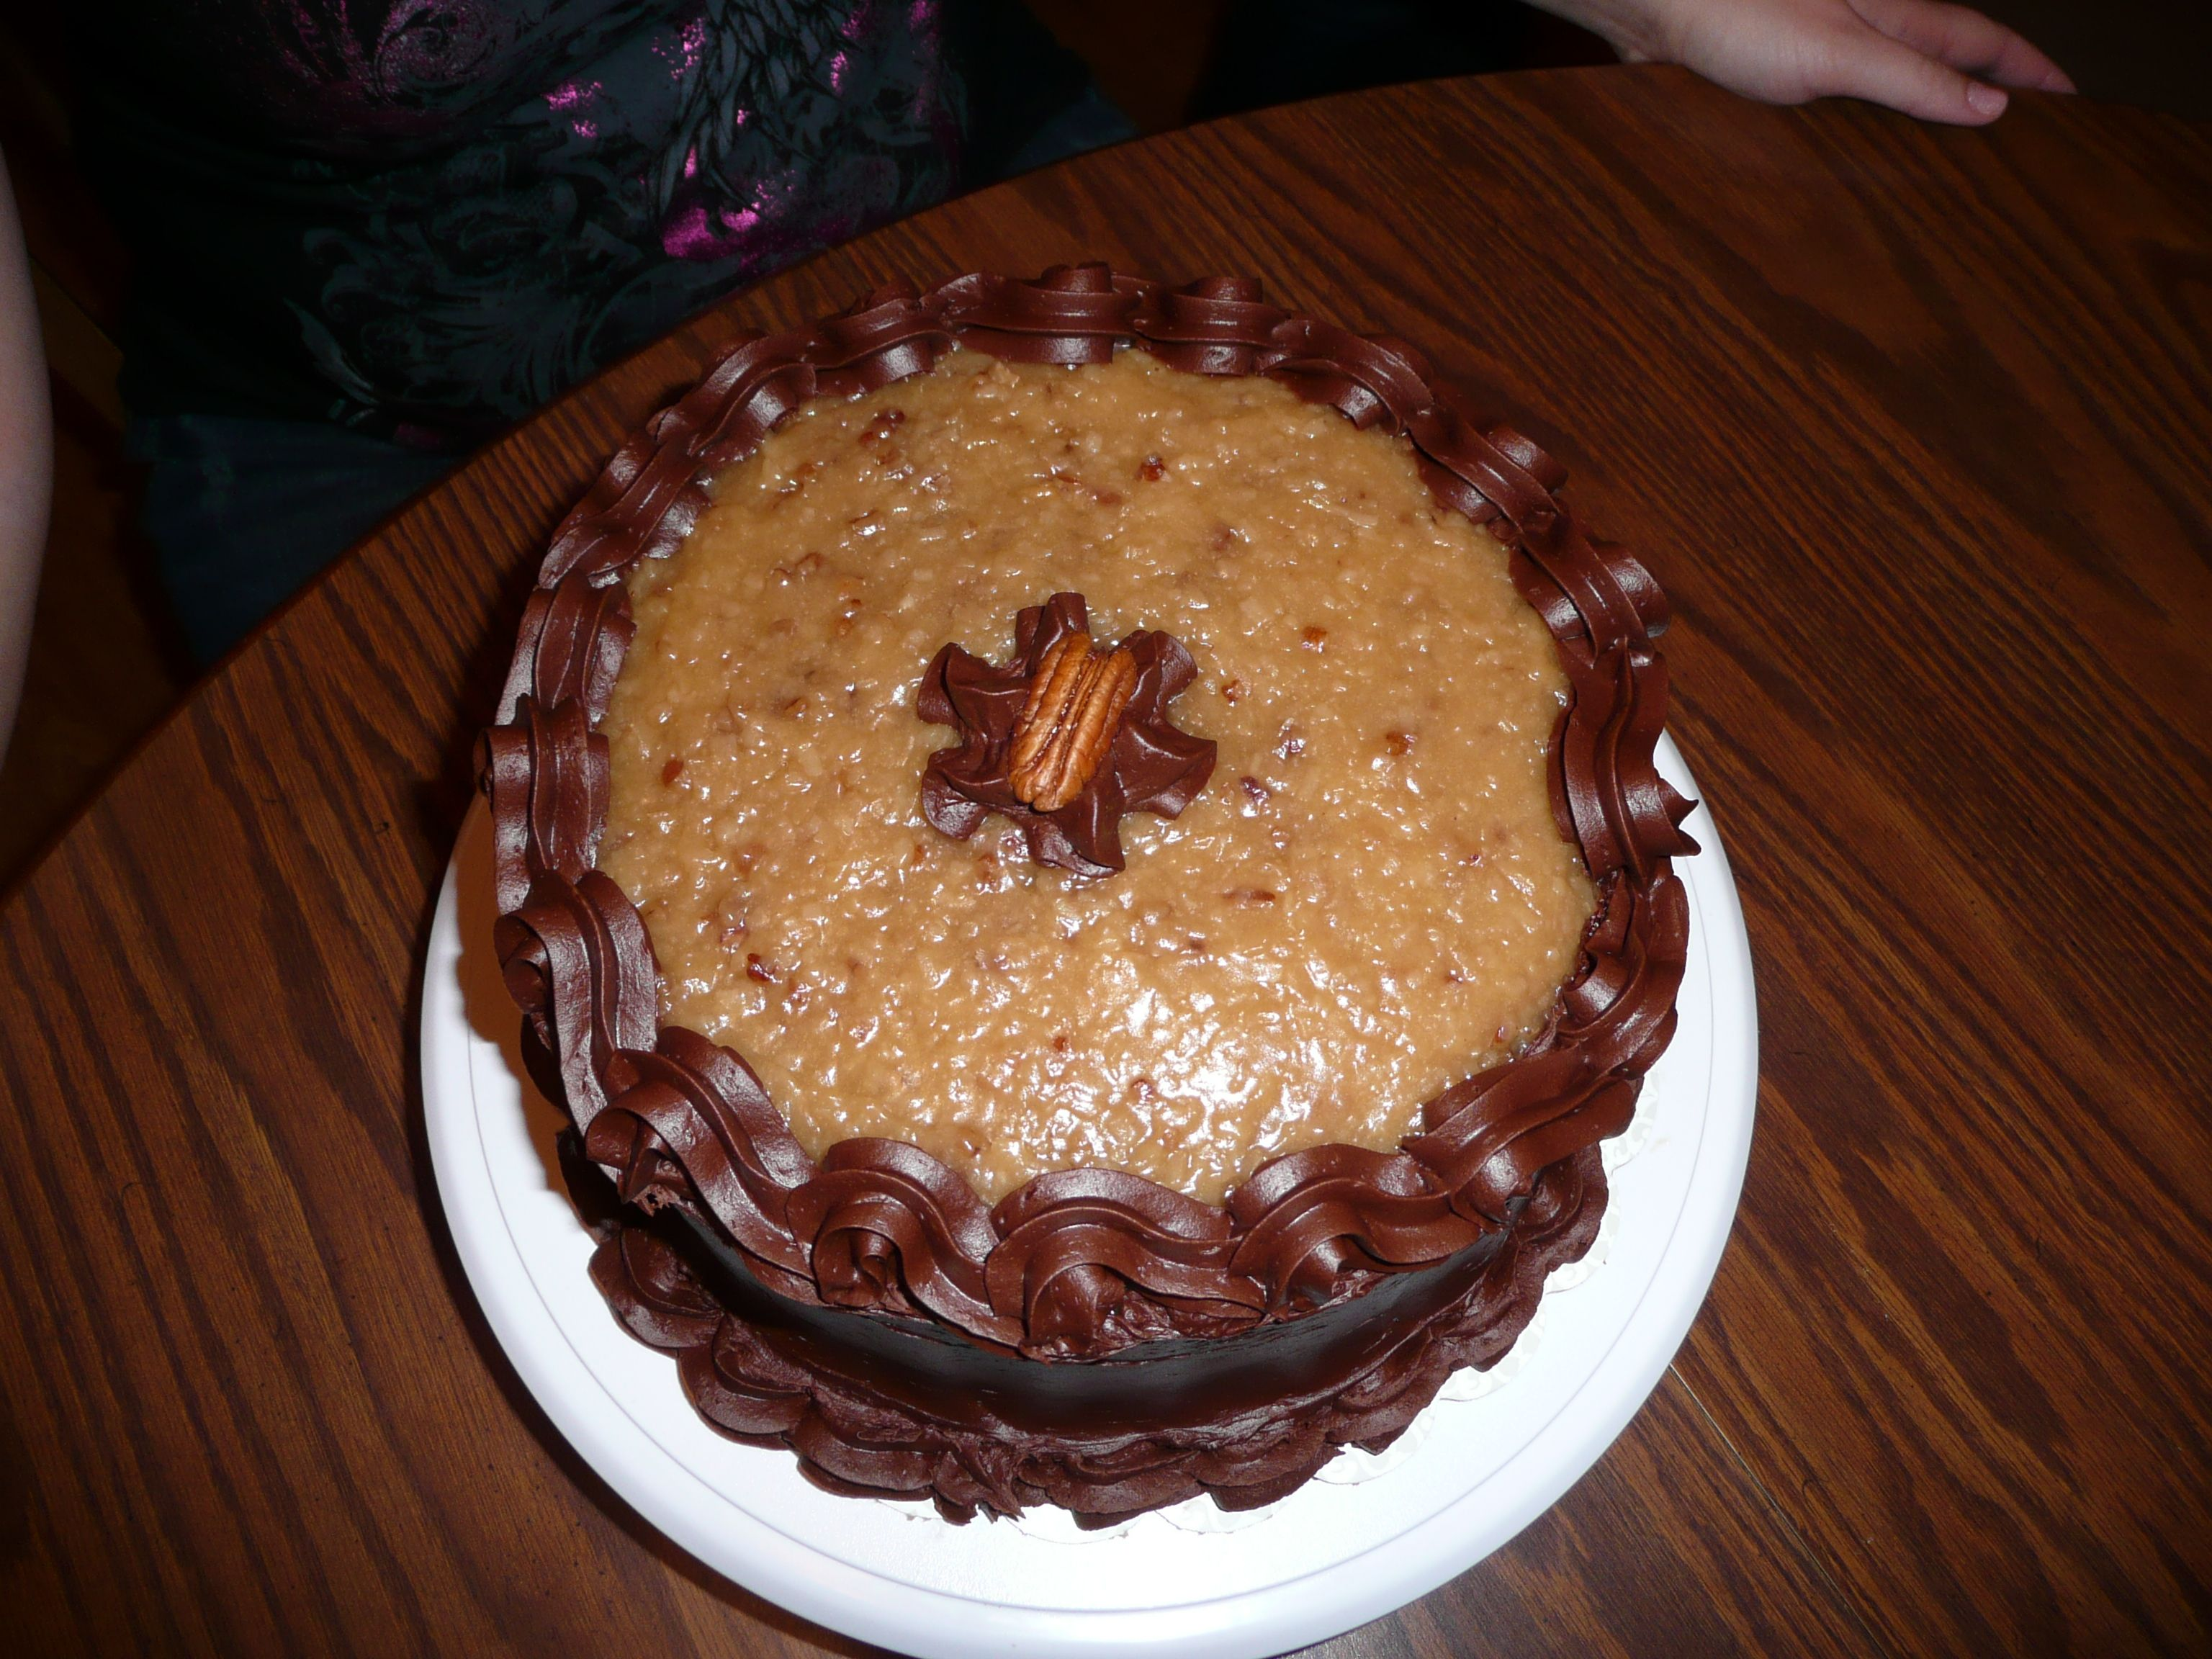 German Chocolate Birthday Cake This One Looked Pretty Good